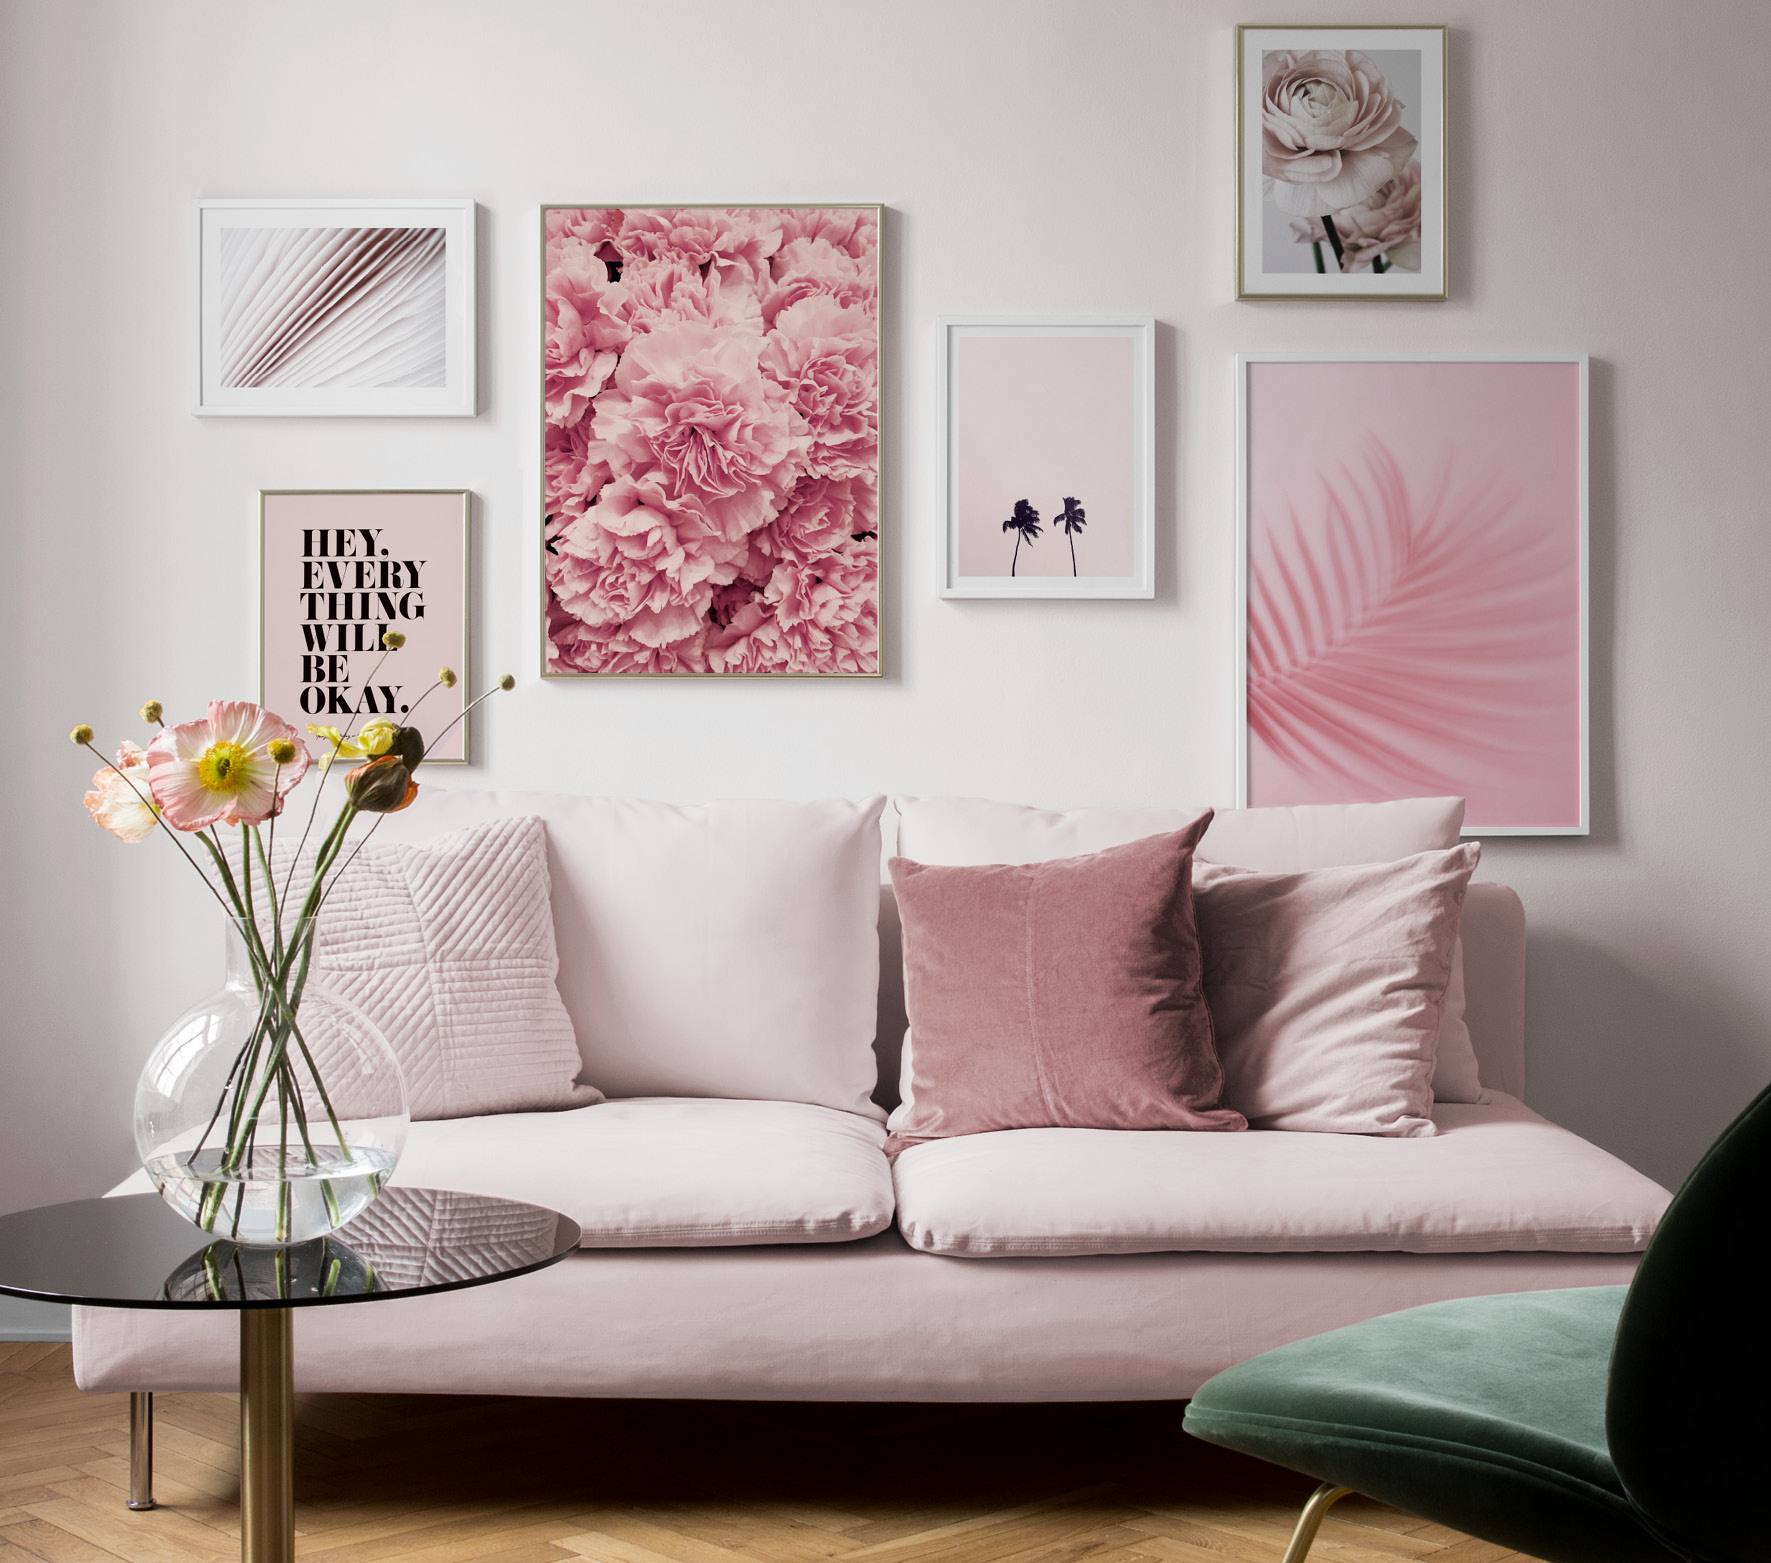 Picture Wall Inspiration For Living Room